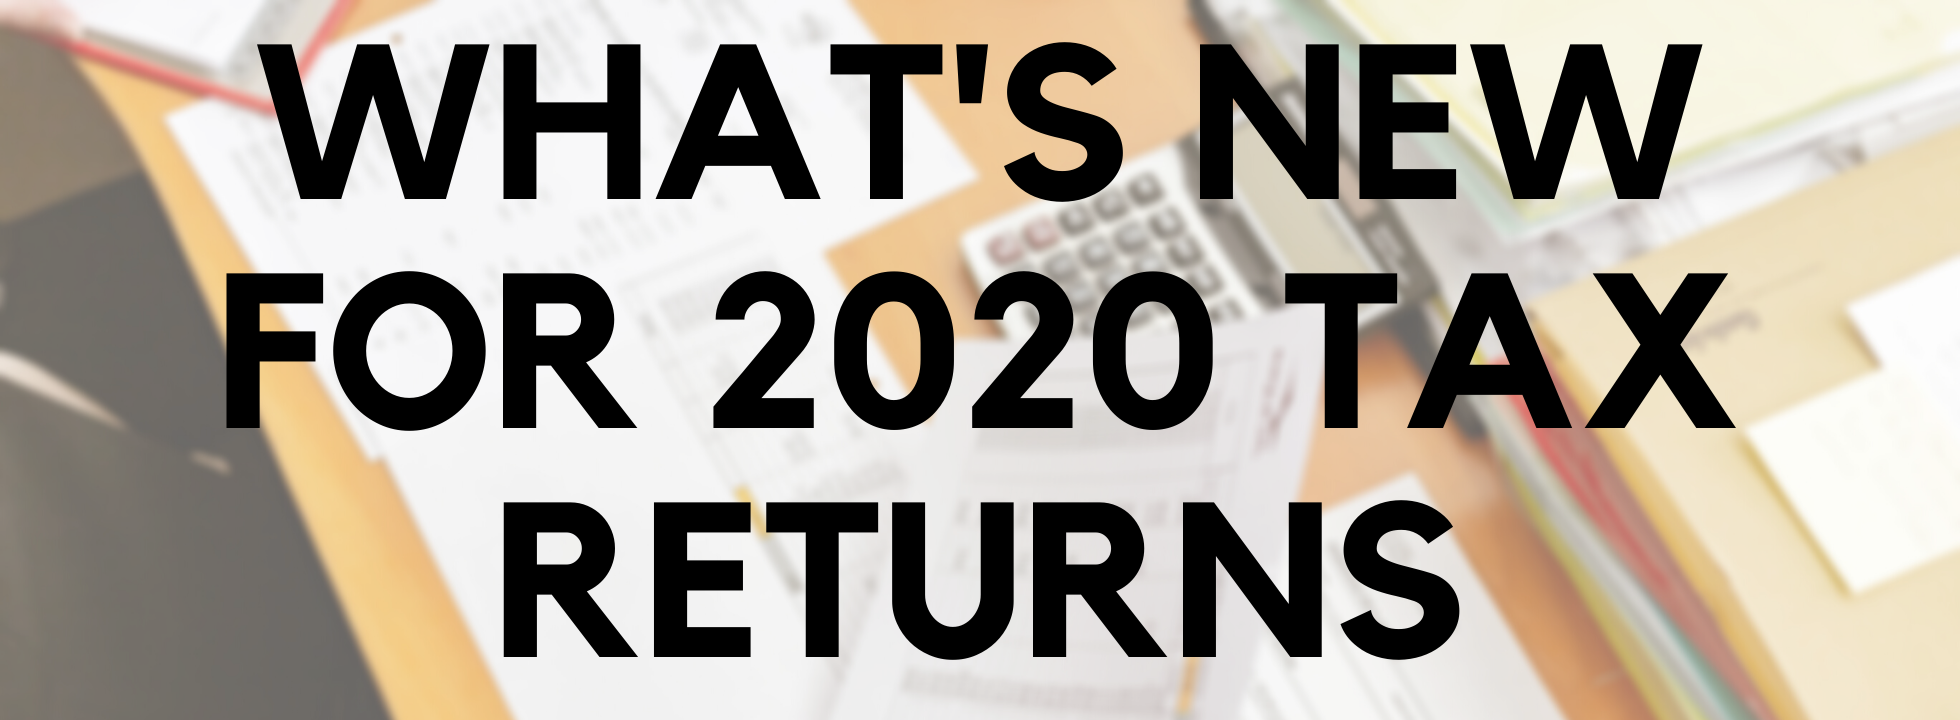 Whats New for 2020 Tax Returns